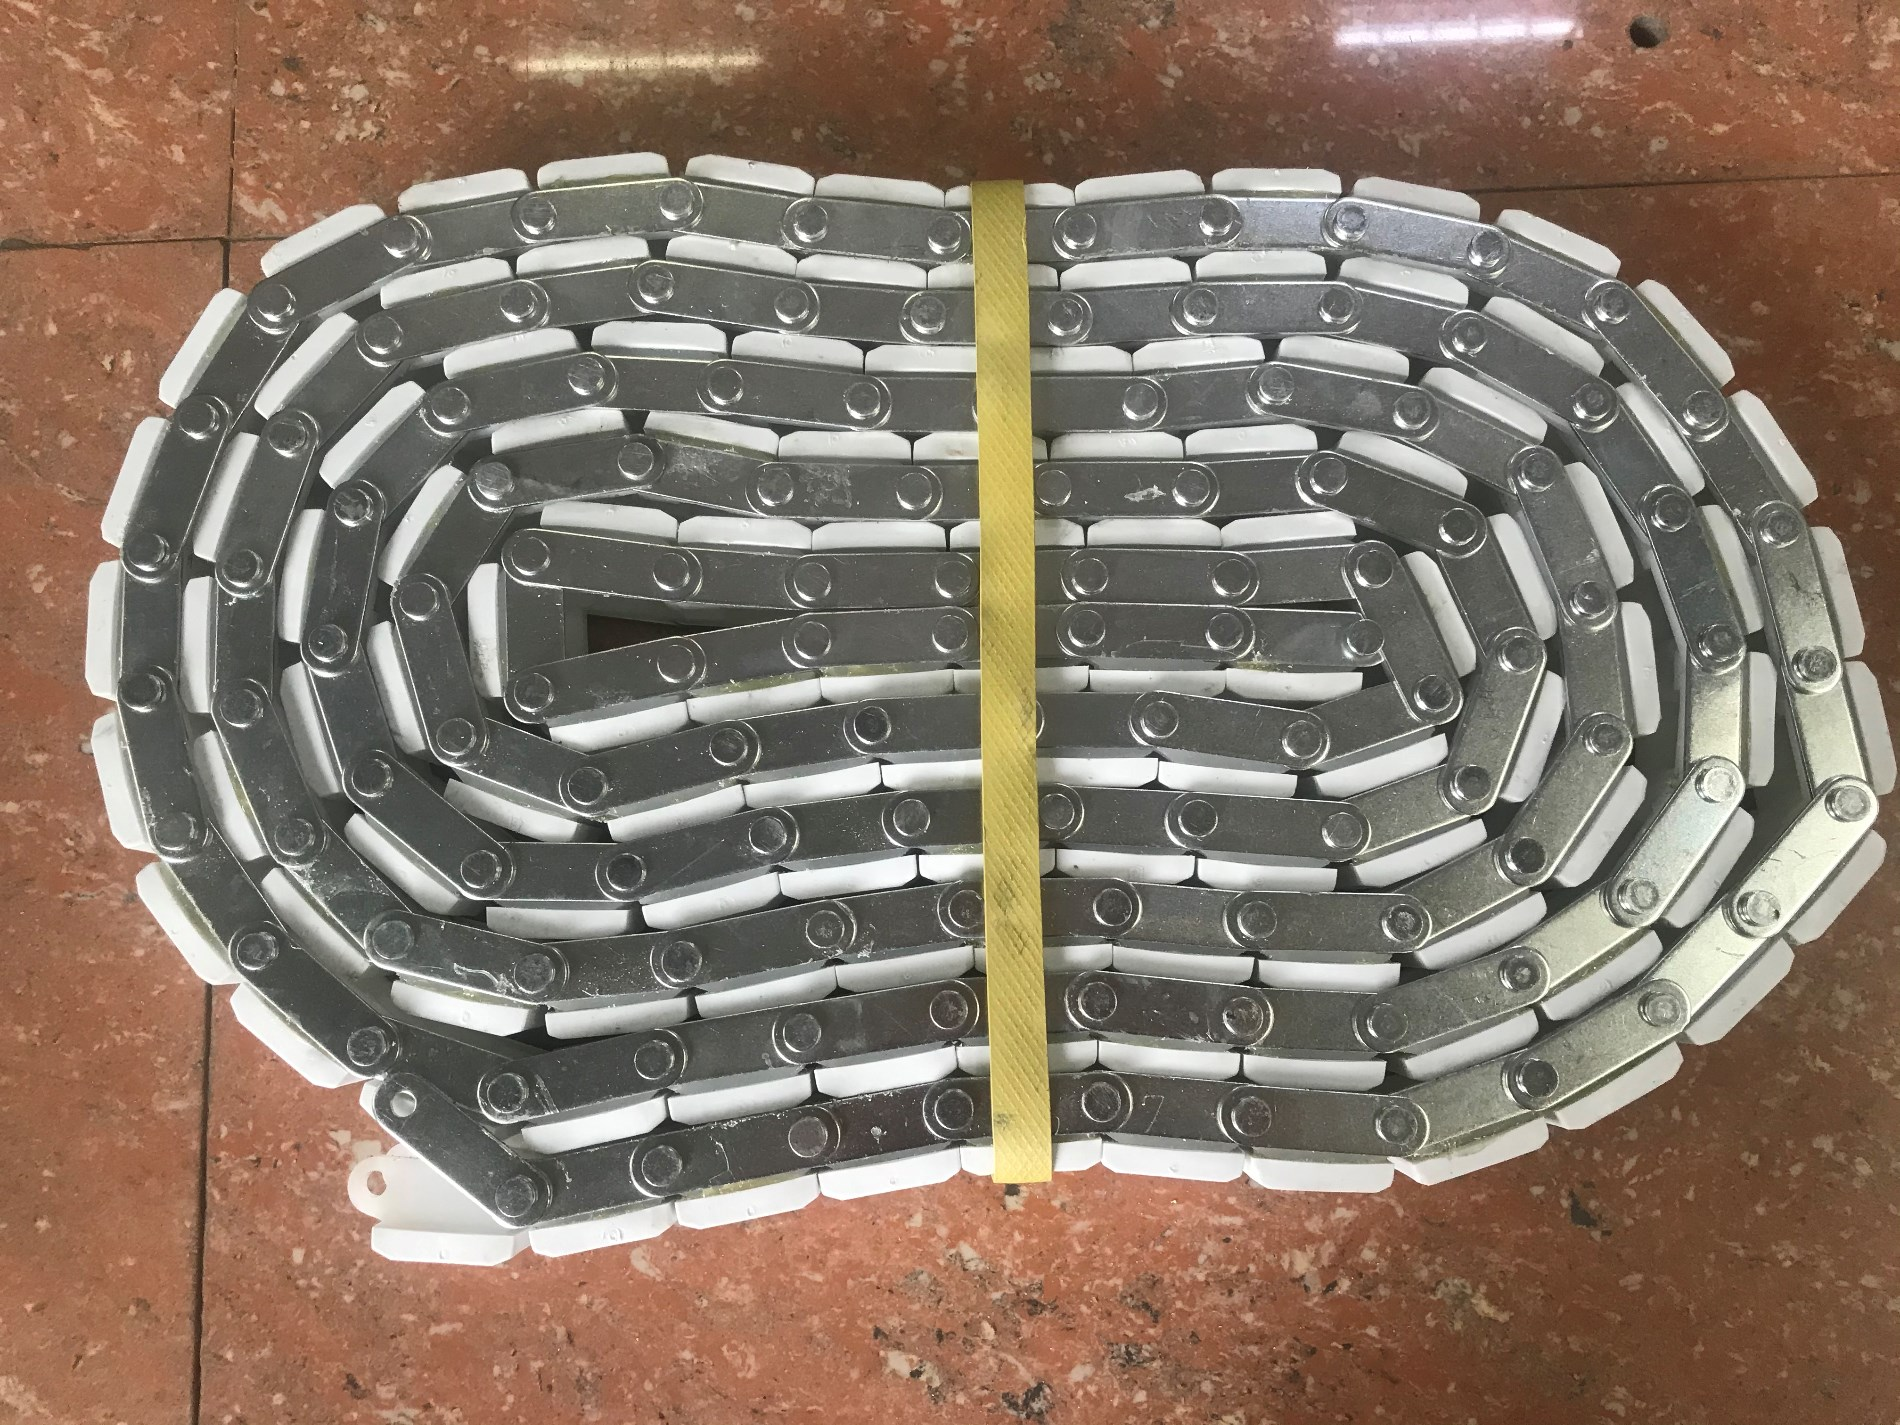 120 Section Conveyor Chain Manufacturers, 120 Section Conveyor Chain Factory, Supply 120 Section Conveyor Chain